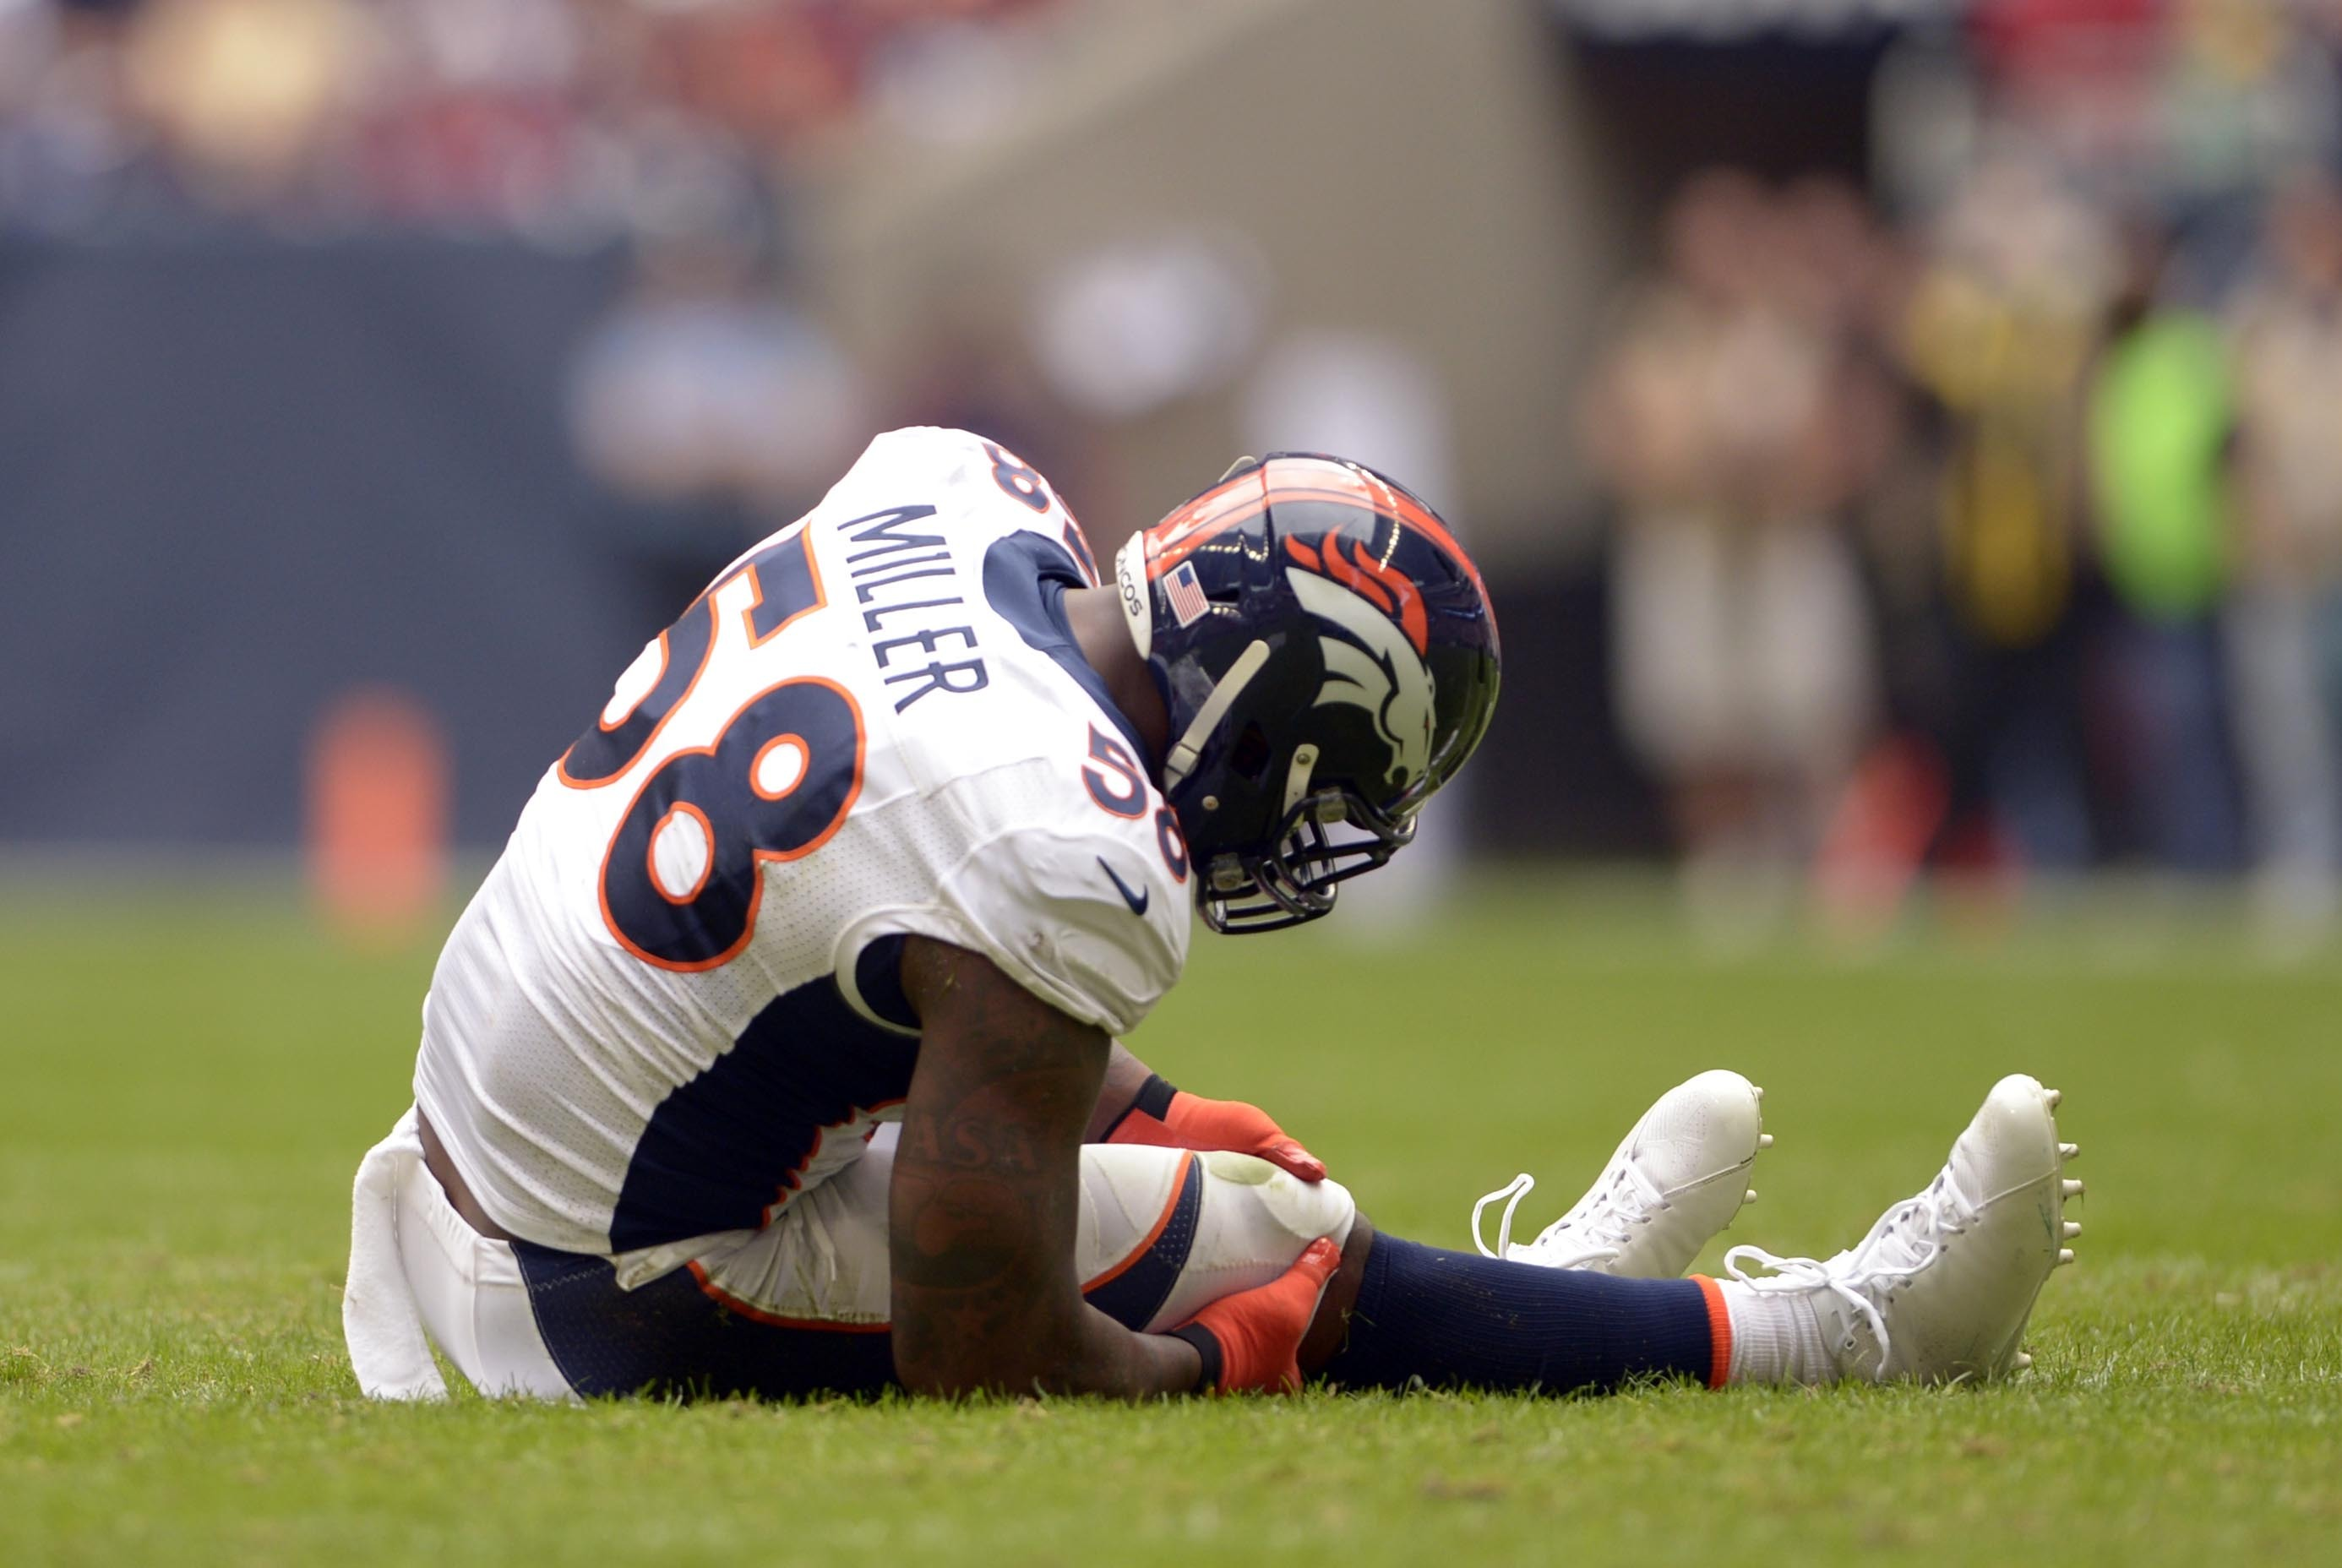 Von Miller's Injury a Severe Blow to Broncos' Super Bowl Dreams | Bleacher  Report | Latest News, Videos and Highlights